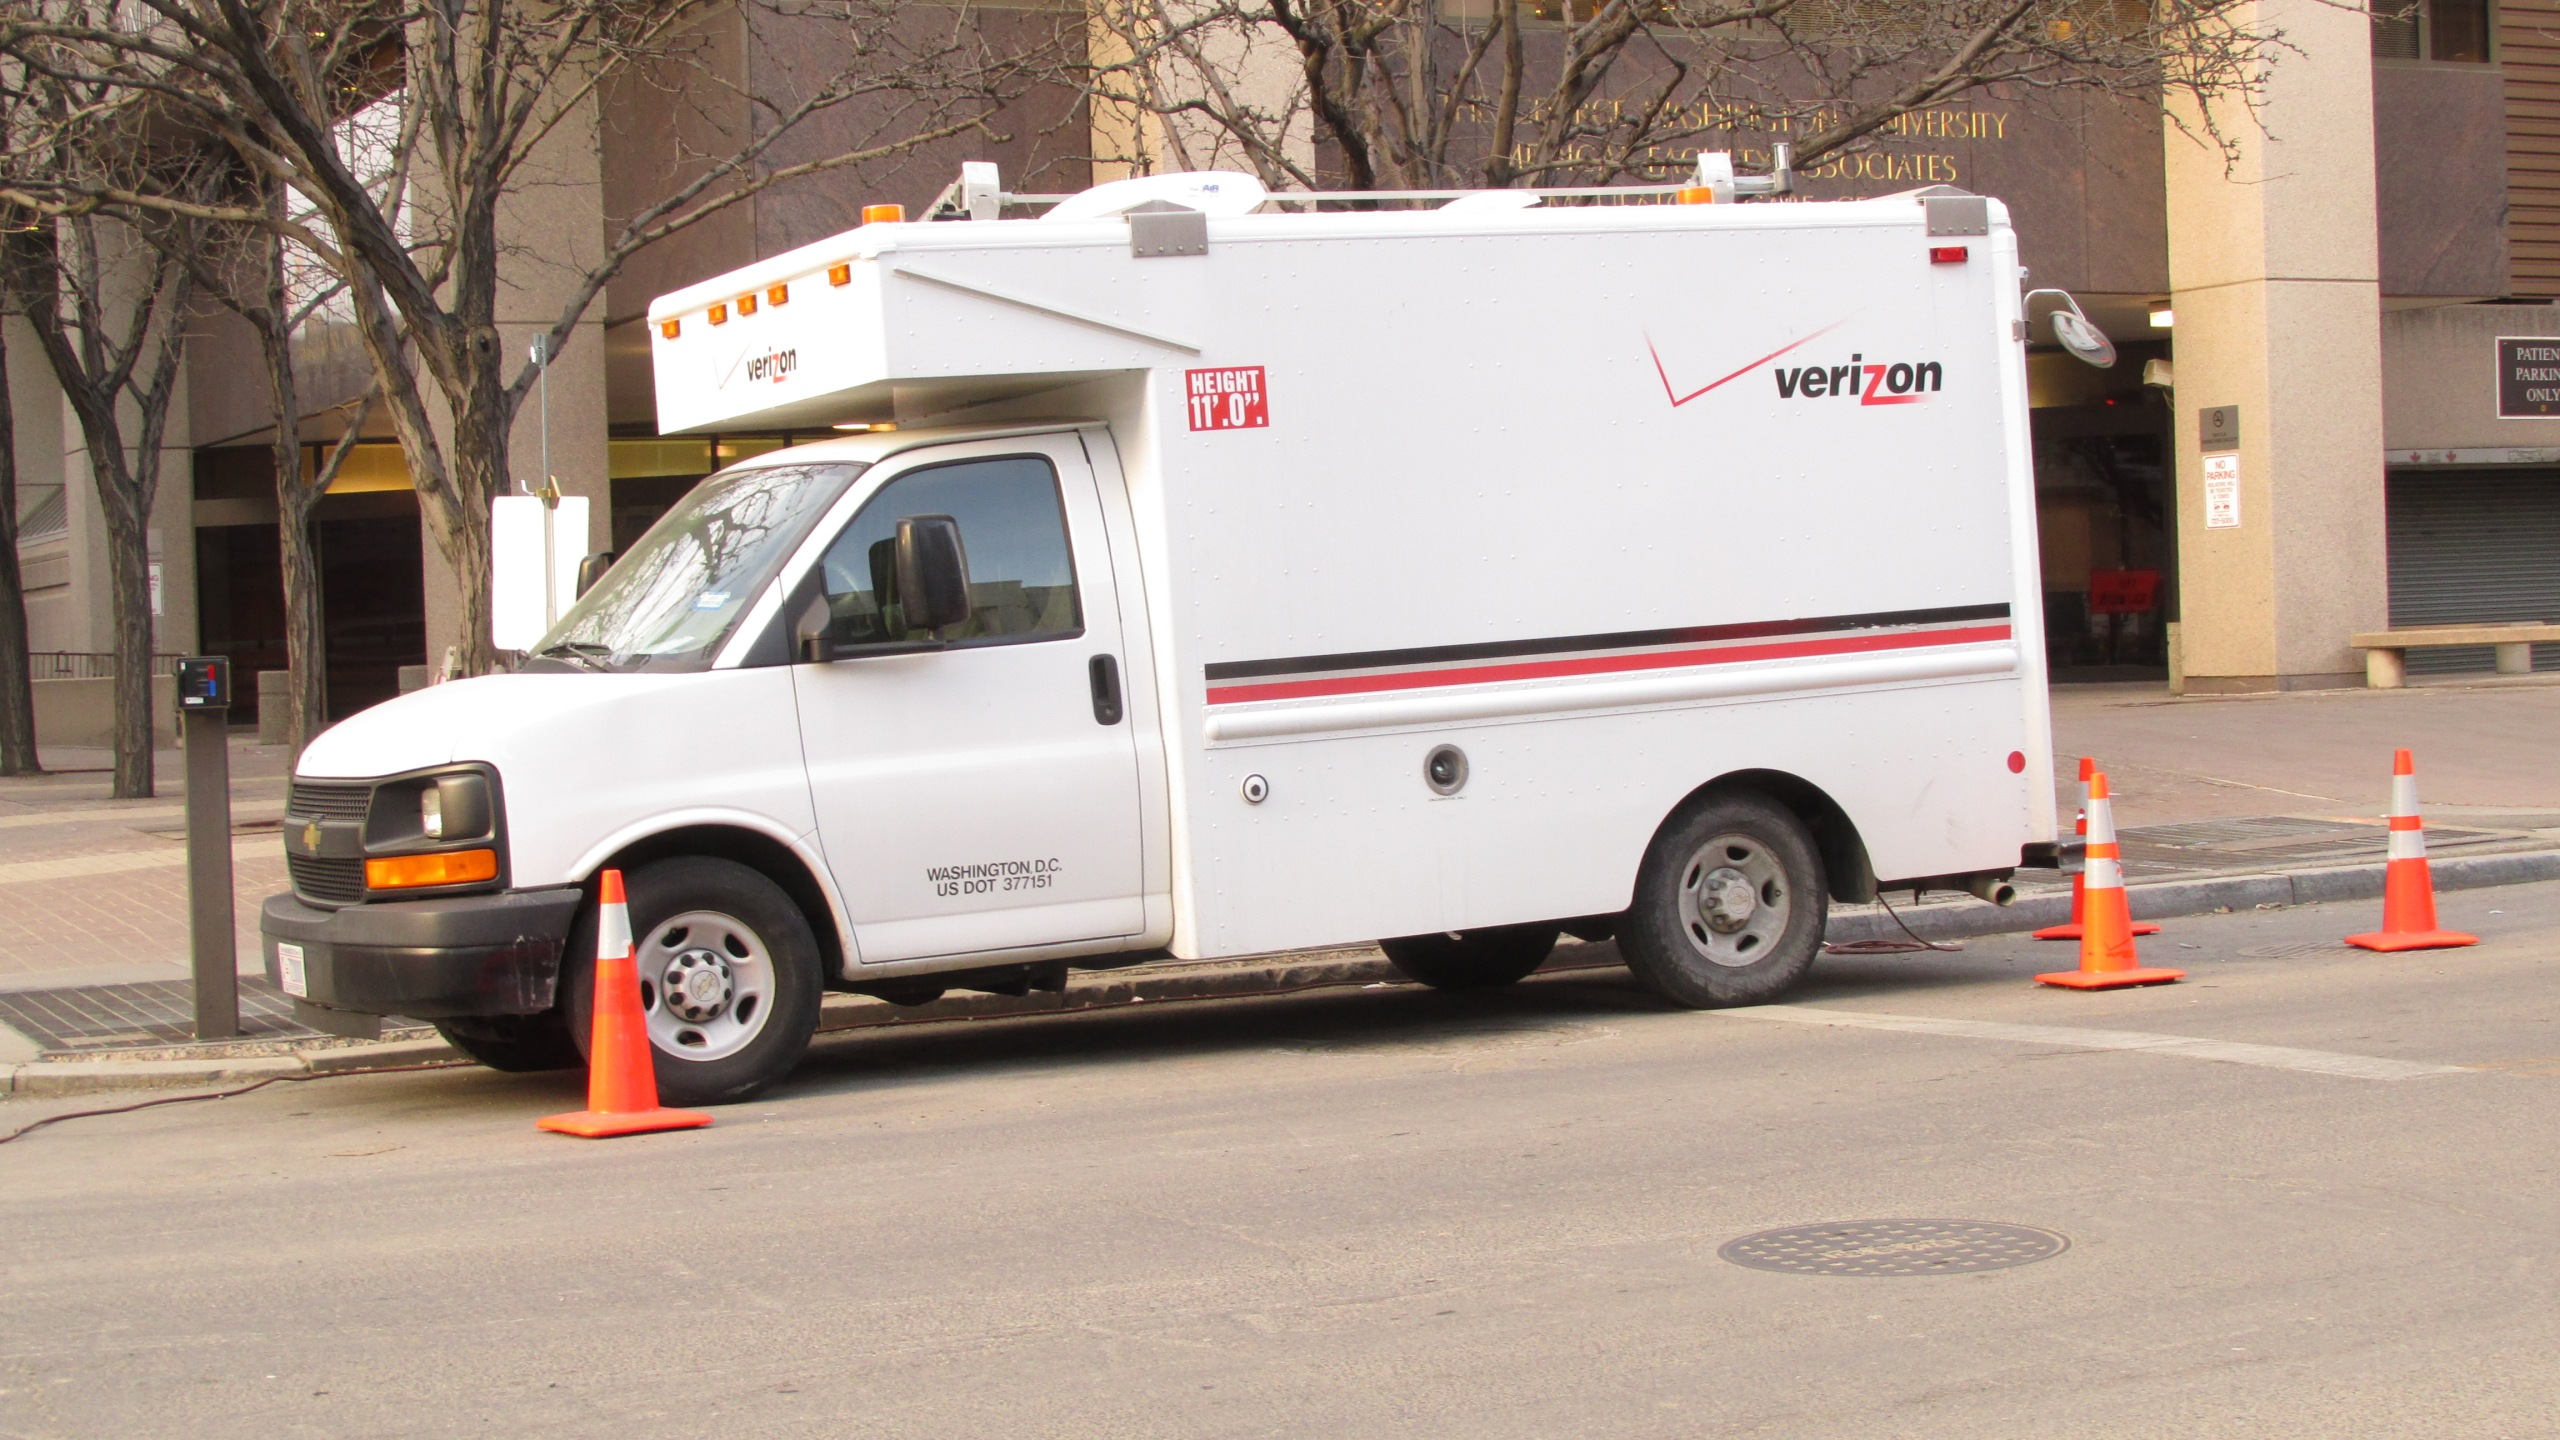 Verizon Van_193014